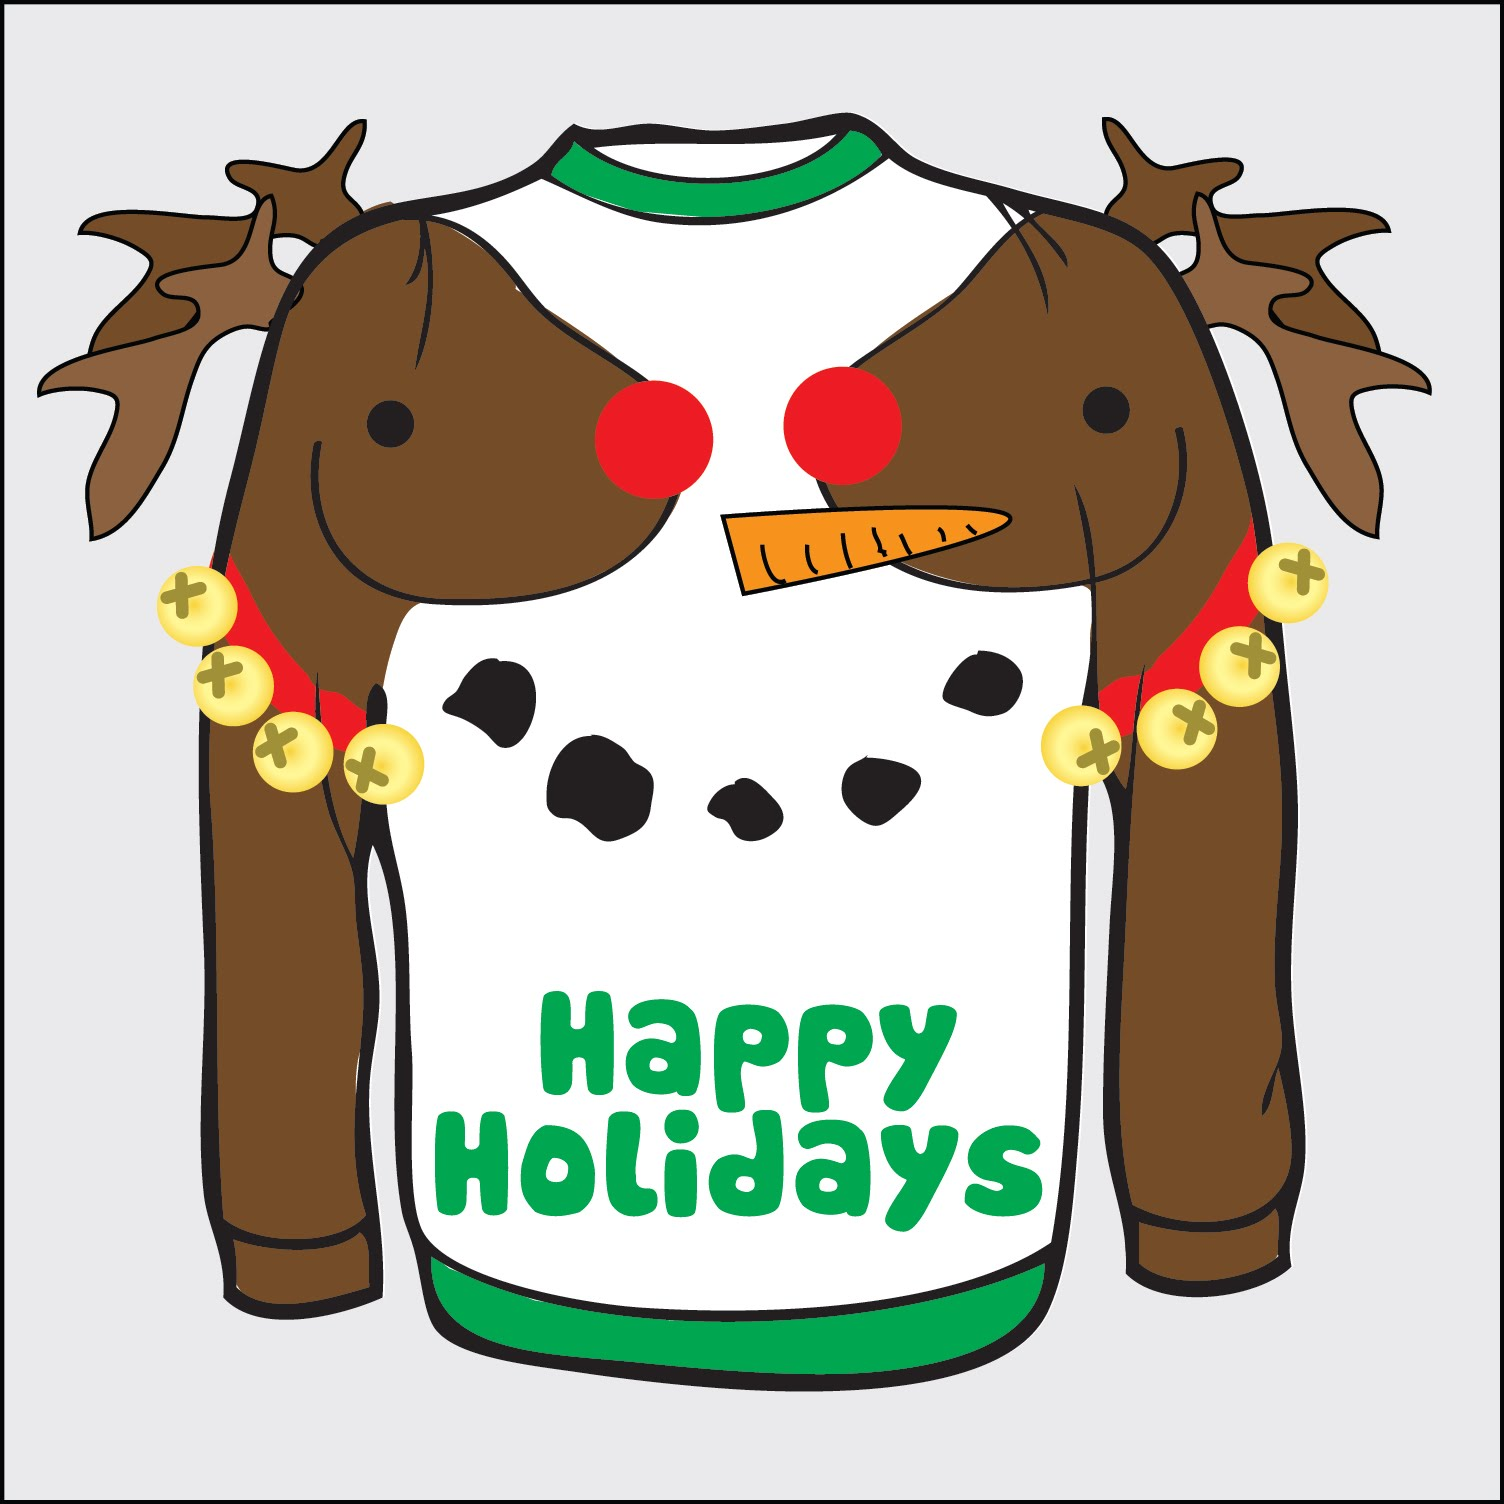 When is ugly christmas sweater day